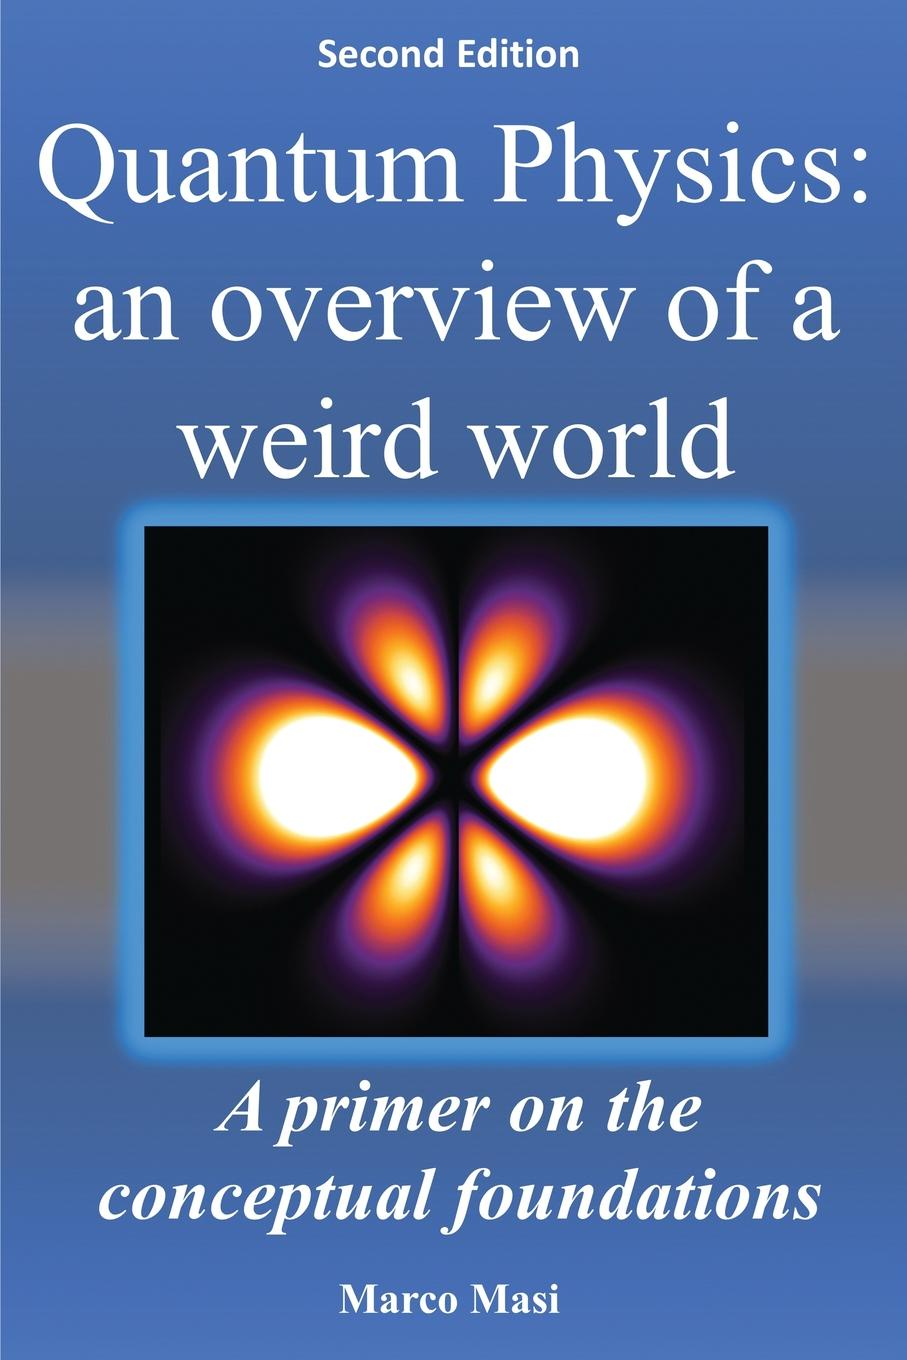 Marco Masi Quantum Physics. an overview of a weird world: A primer on the conceptual foundations of quantum physics fabio oreste quantum trading using principles of modern physics to forecast the financial markets